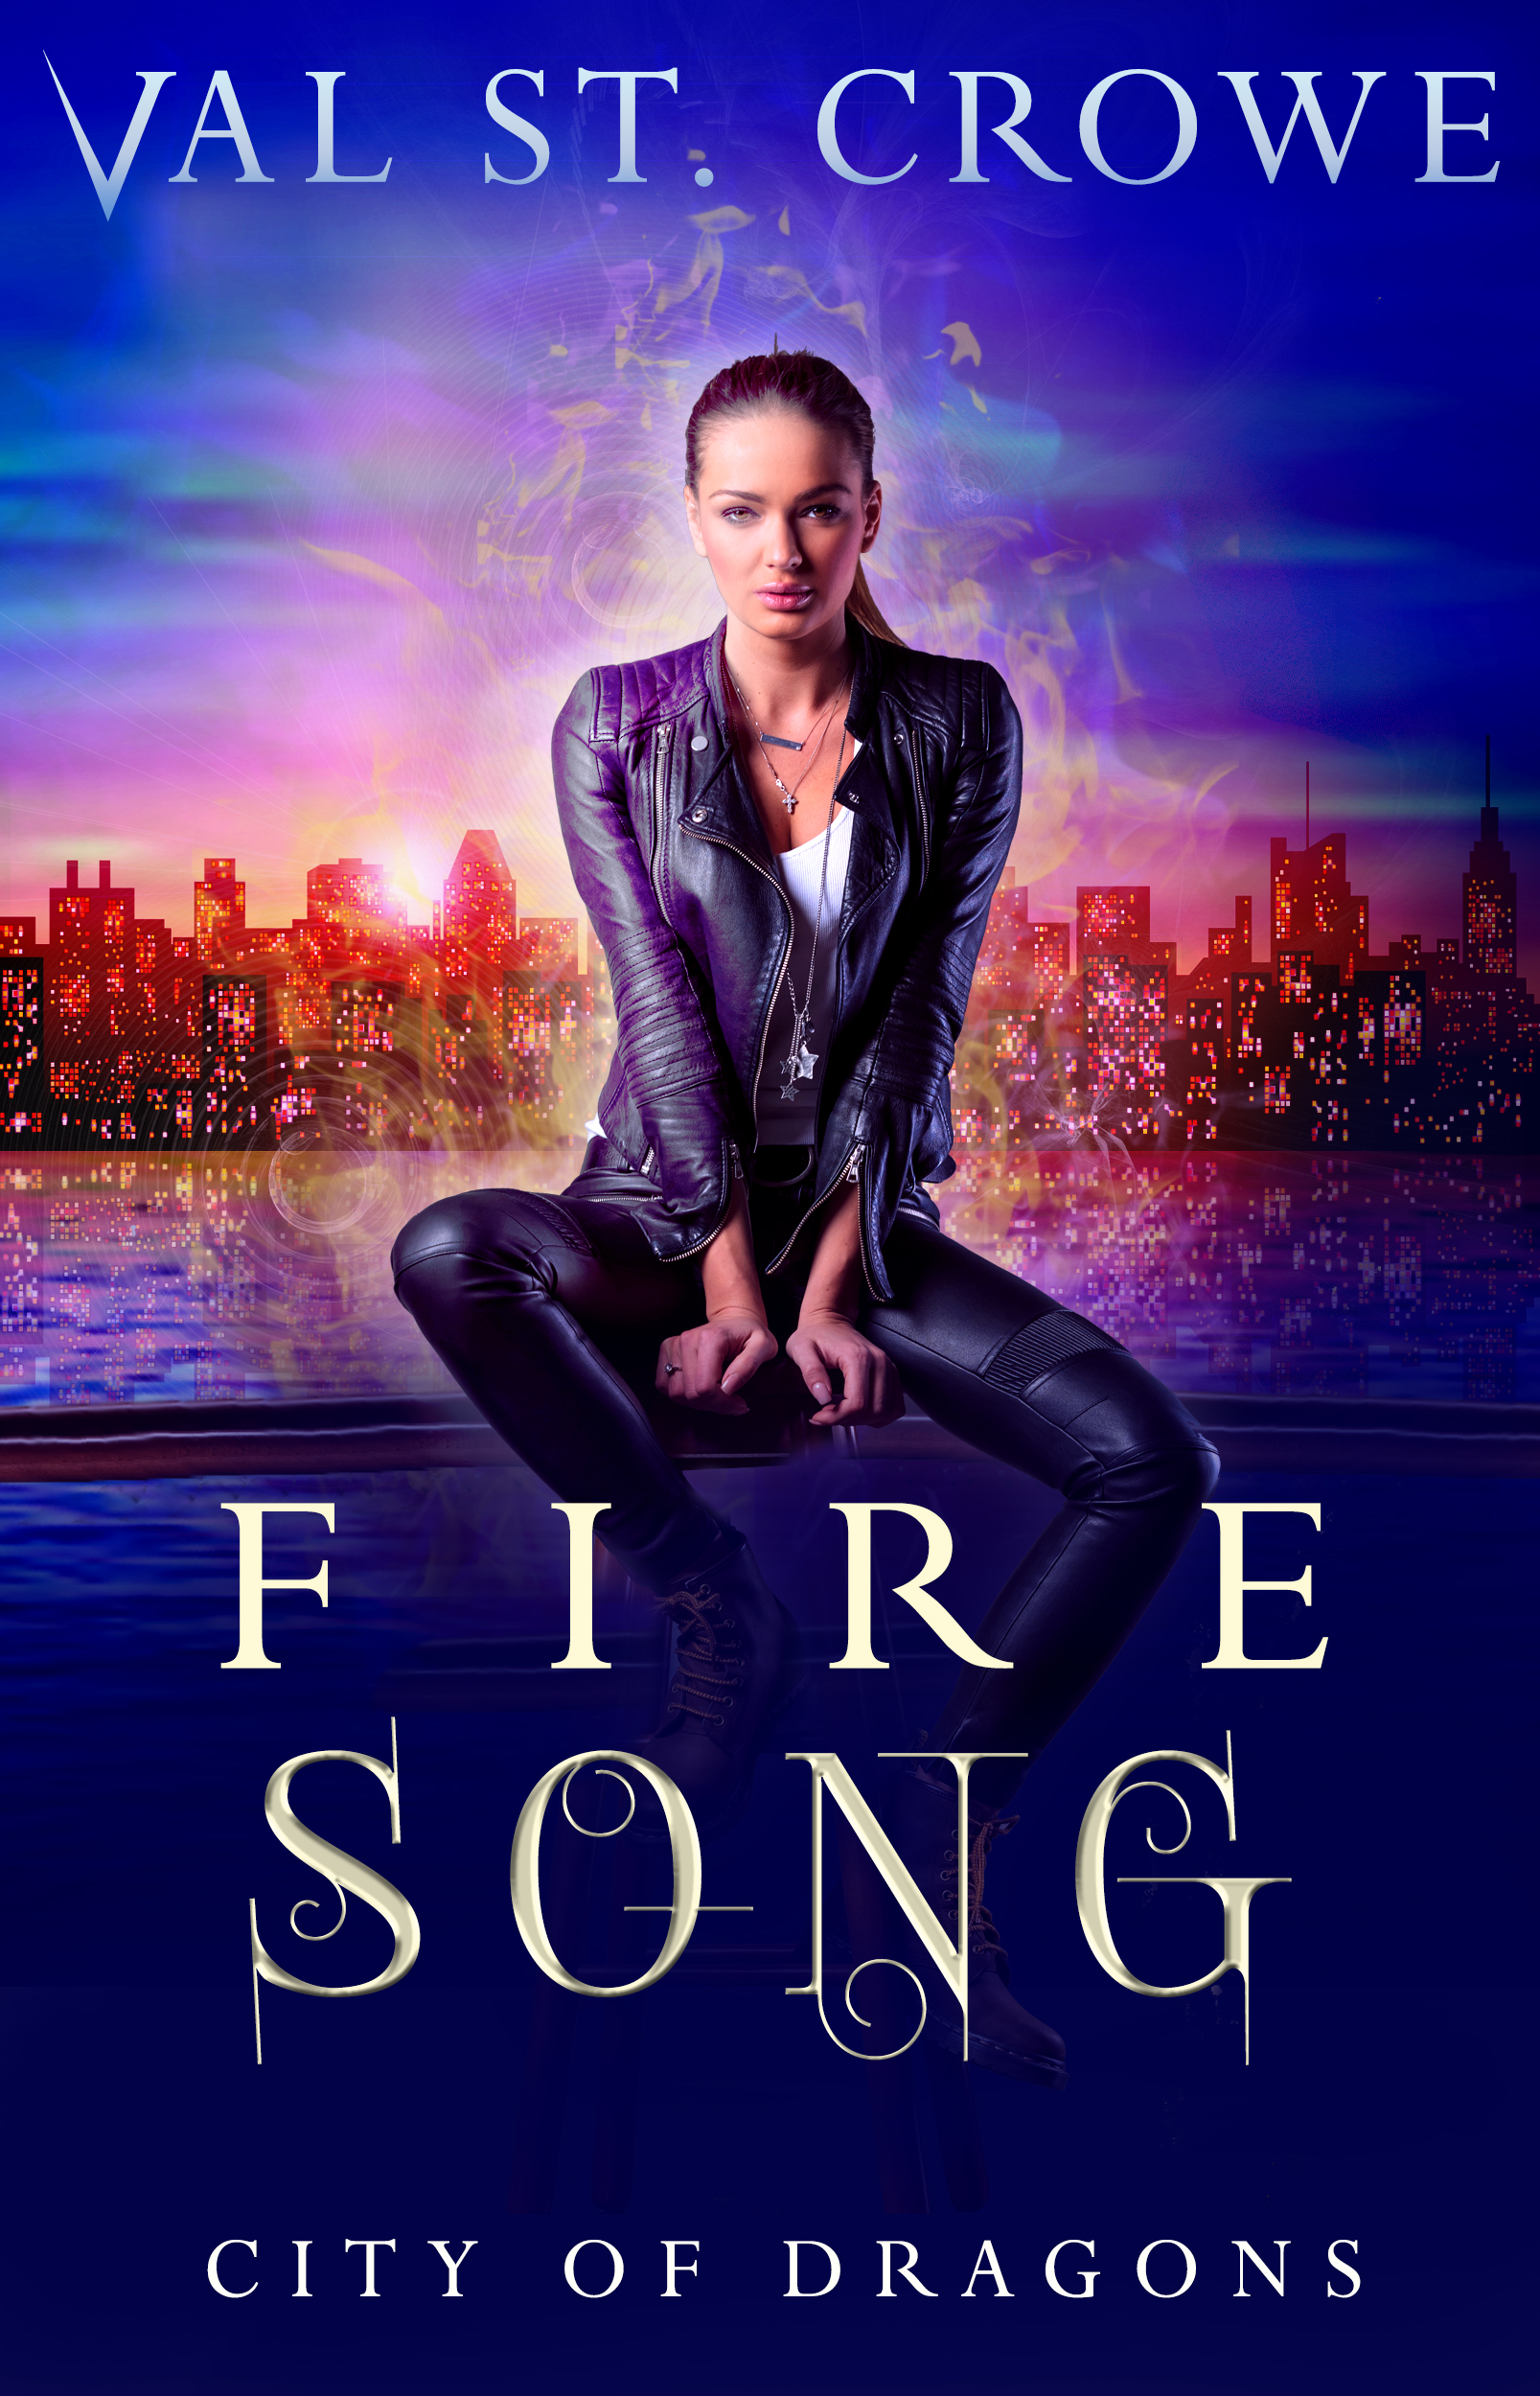 Fire Song, City of Dragons Book 1 (sst-xliii)